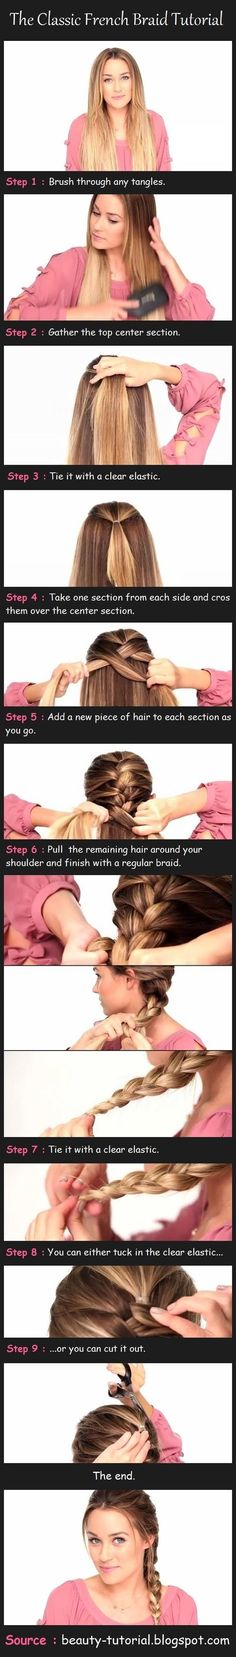 15 DIY Braided Hair Tutorials for Winter